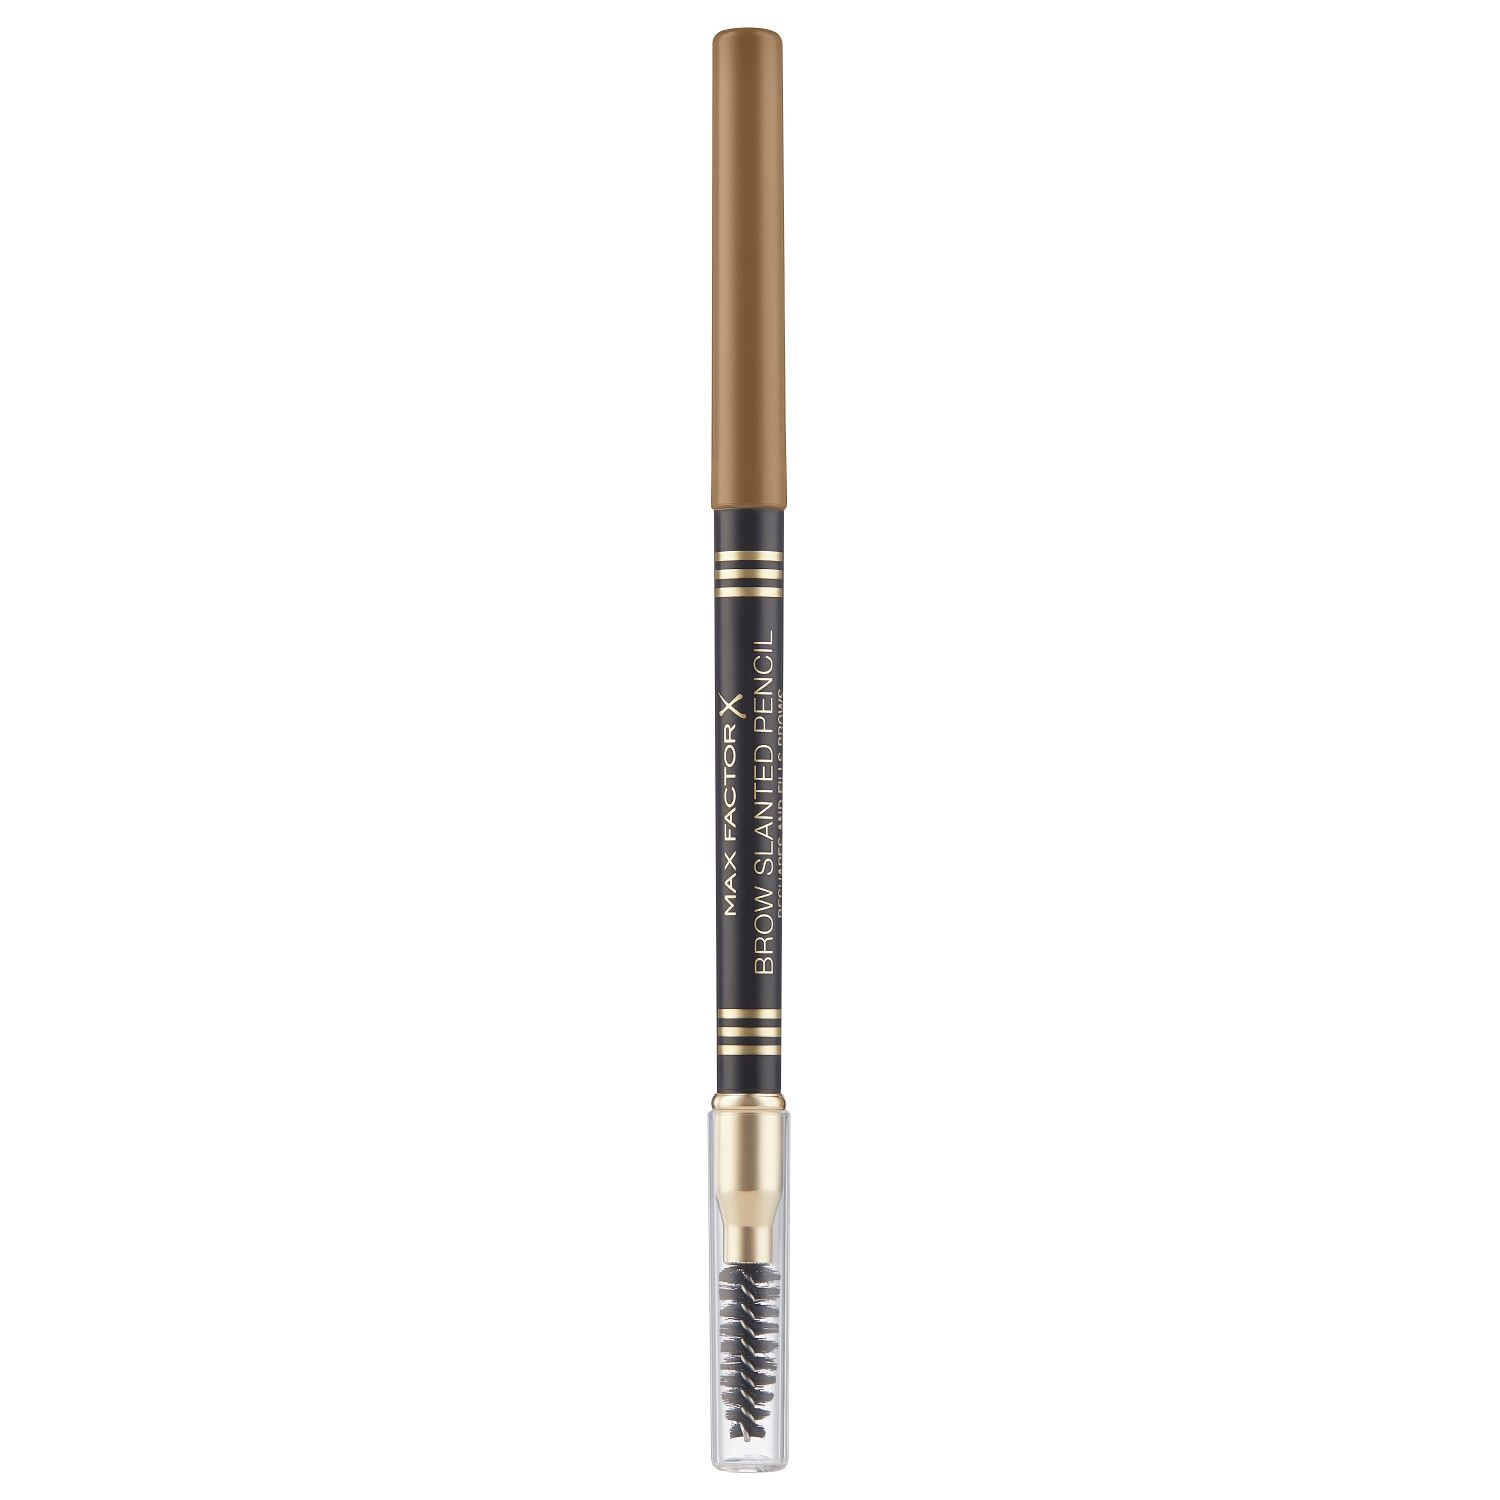 Brow Slanted Pencil Blonde 01